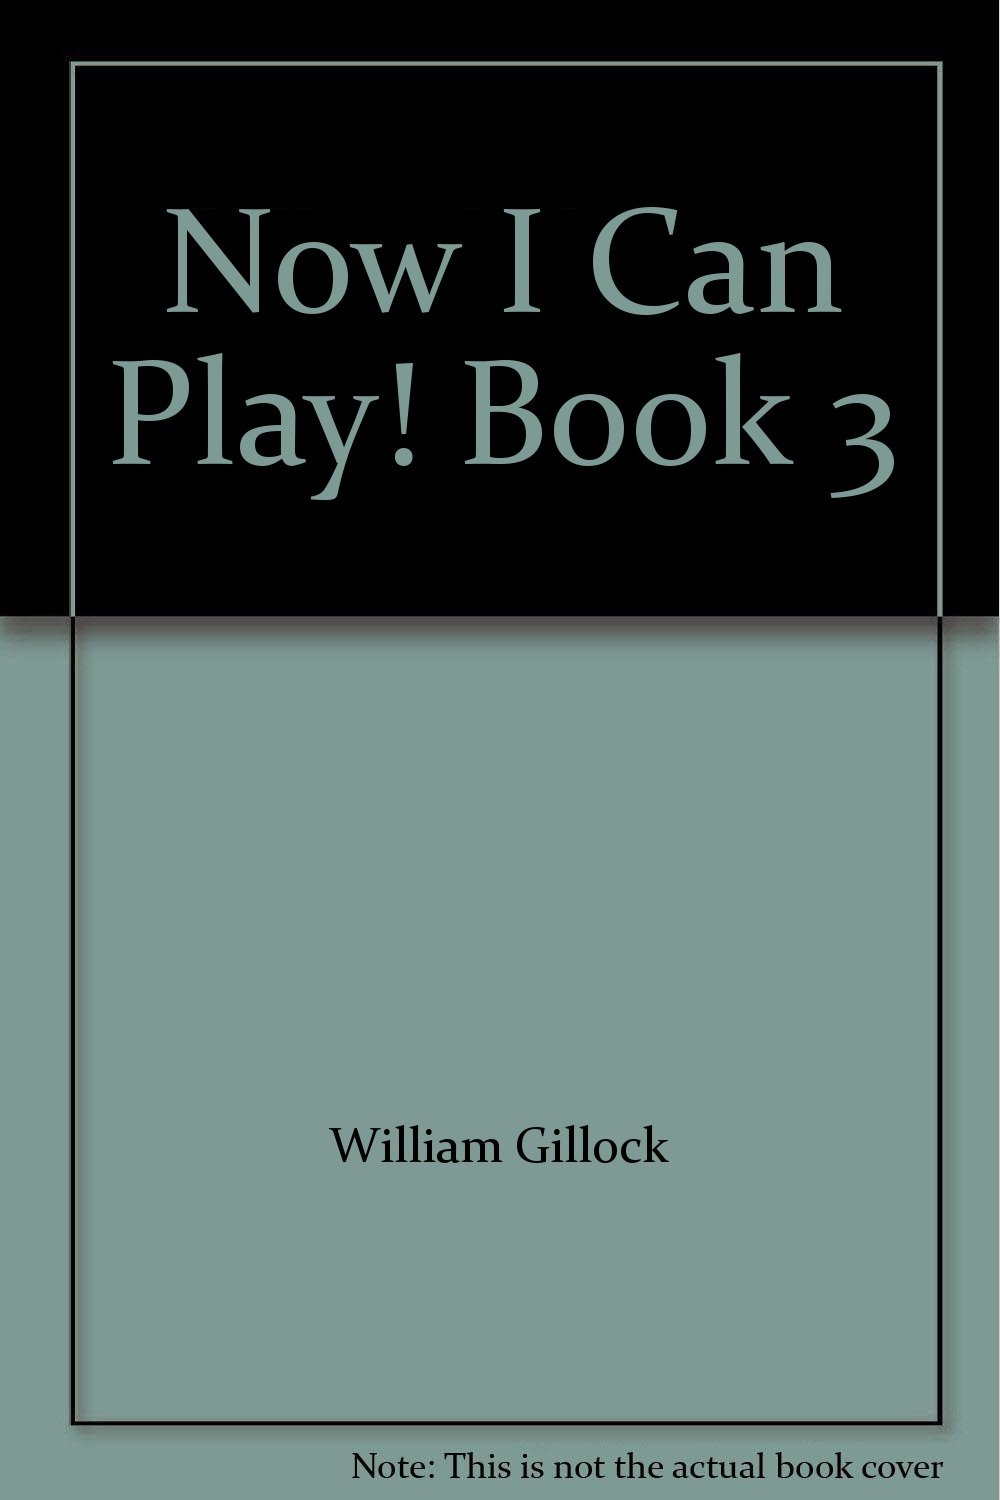 Now I Can Play! Book 3 ebook